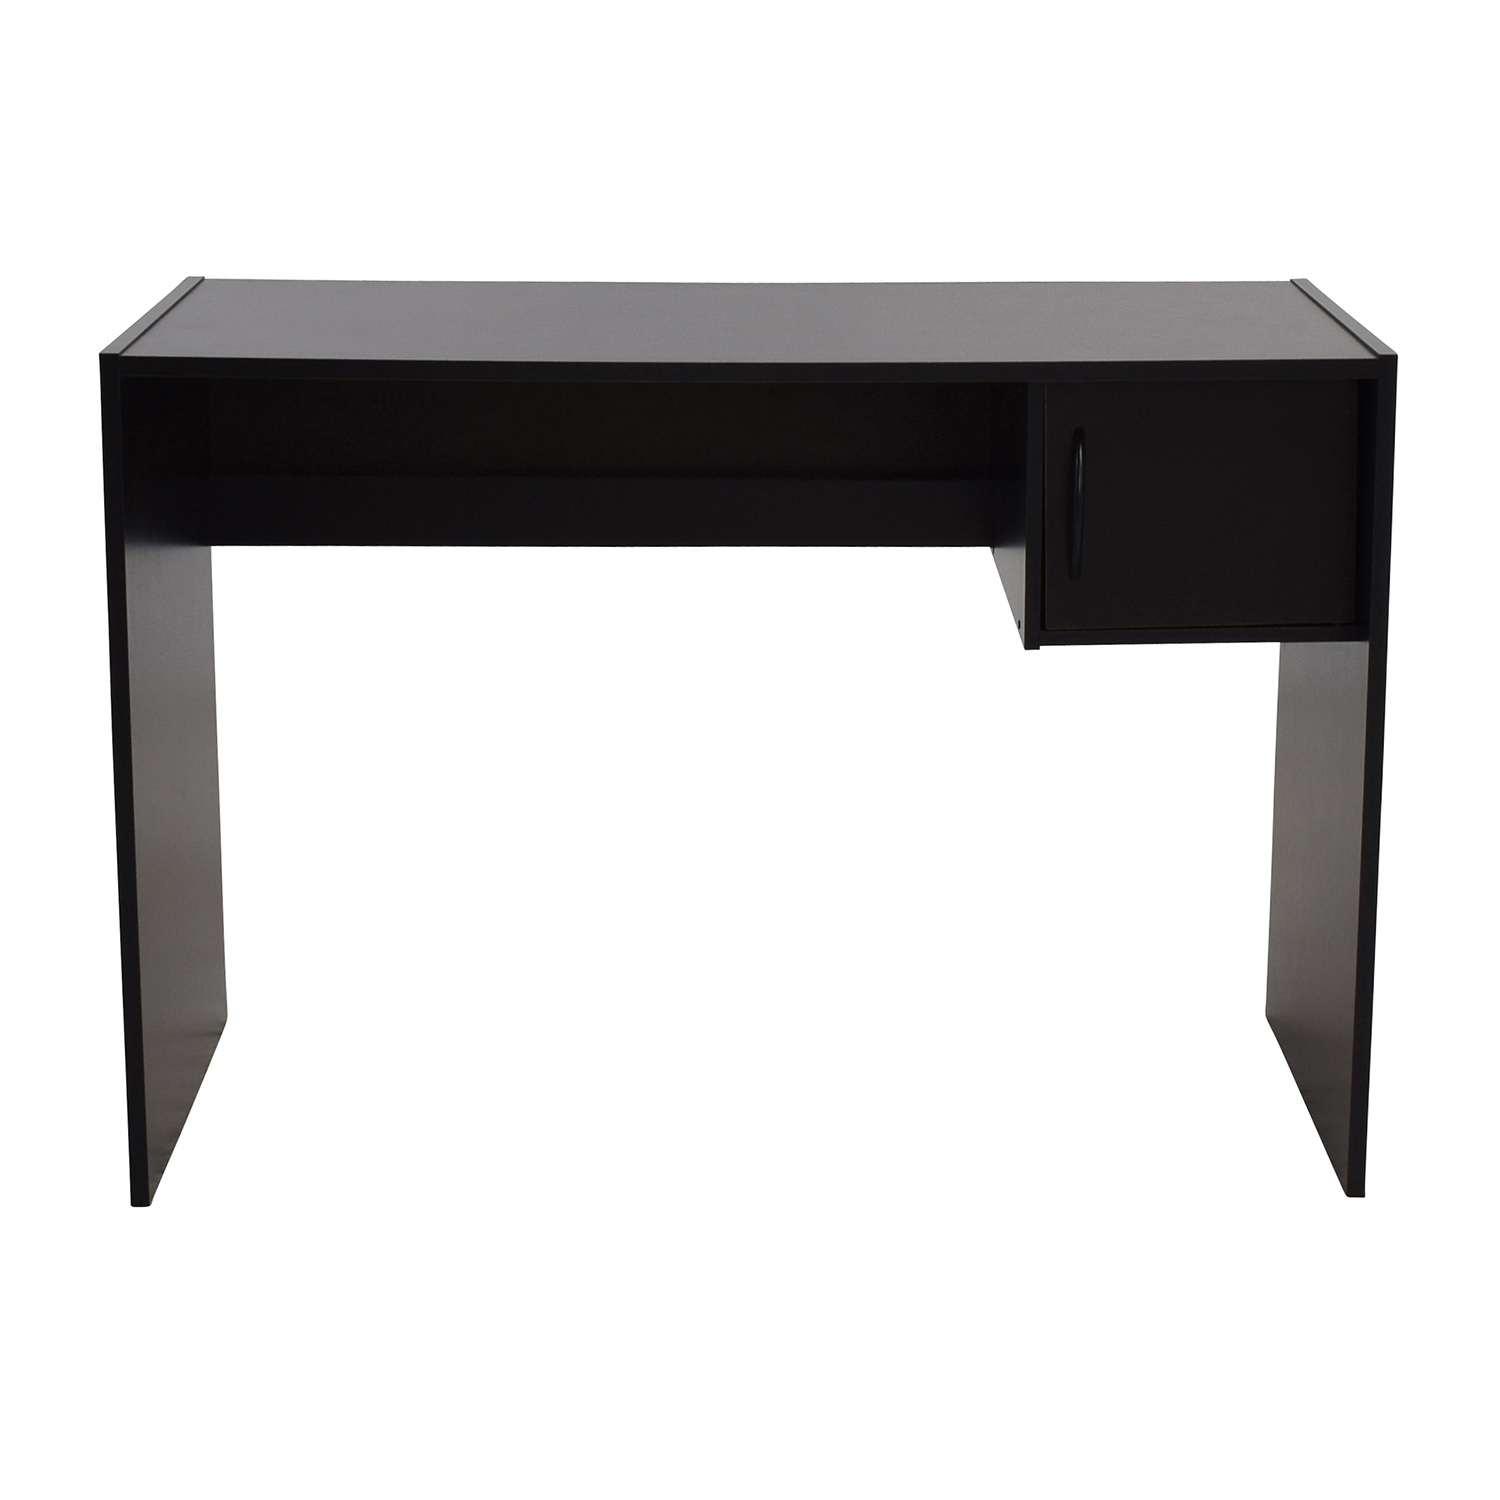 58 OFF  Mainstays Mainstays Black Desk with Storage  Tables